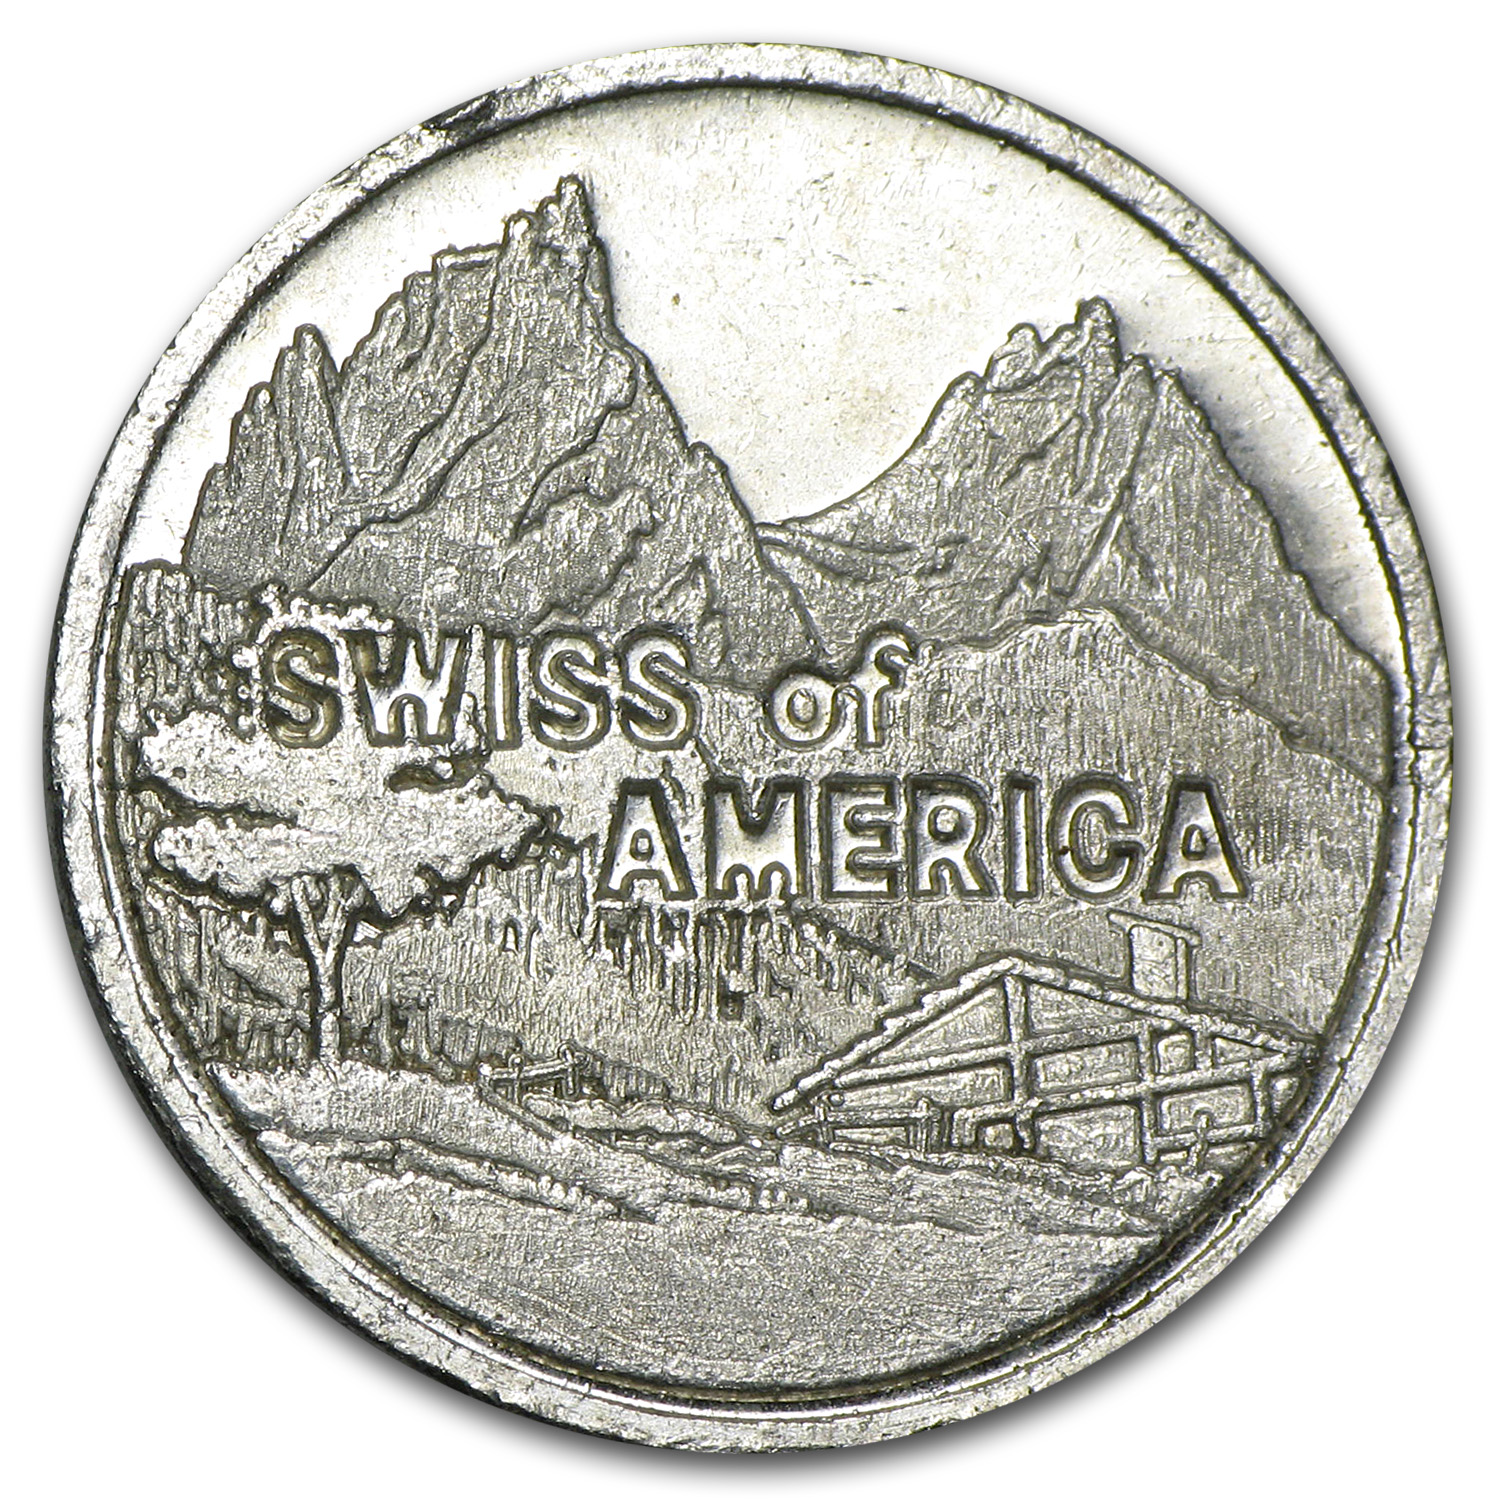 1 oz Silver Rounds - Swiss of America (23.5 mm)